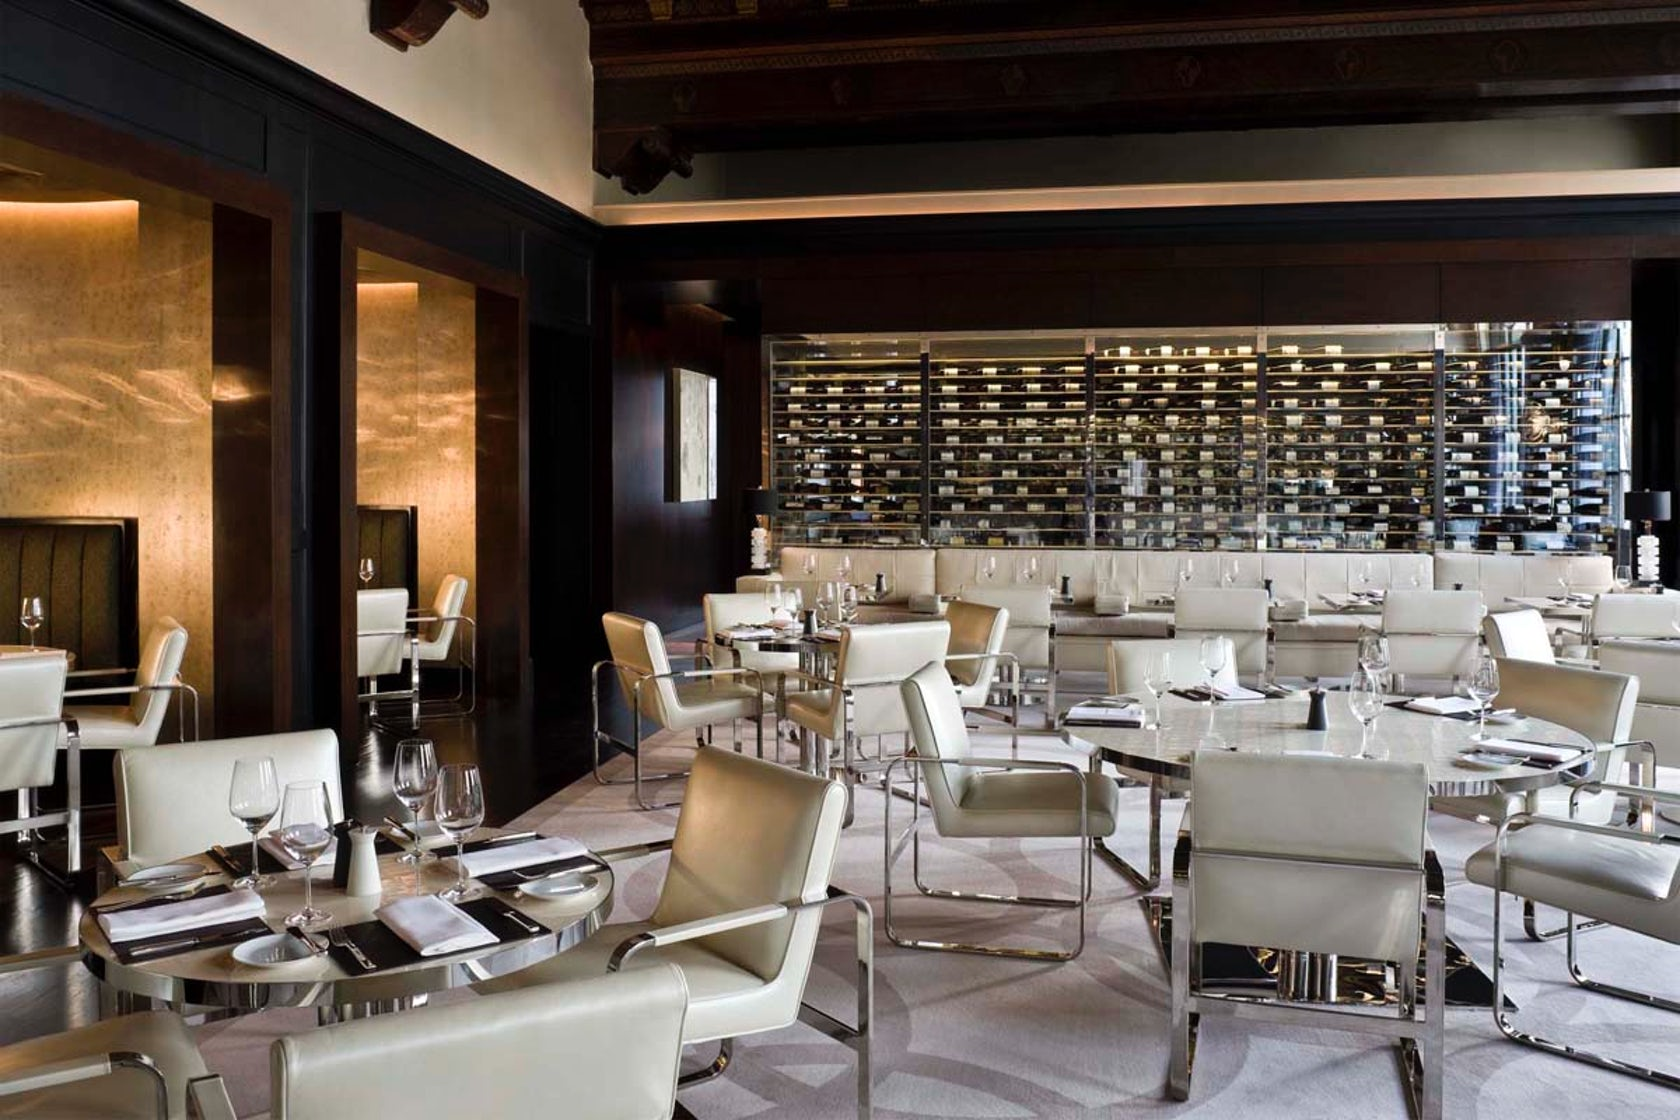 Adour at the st regis washington d c architizer - Interior design jobs washington state ...